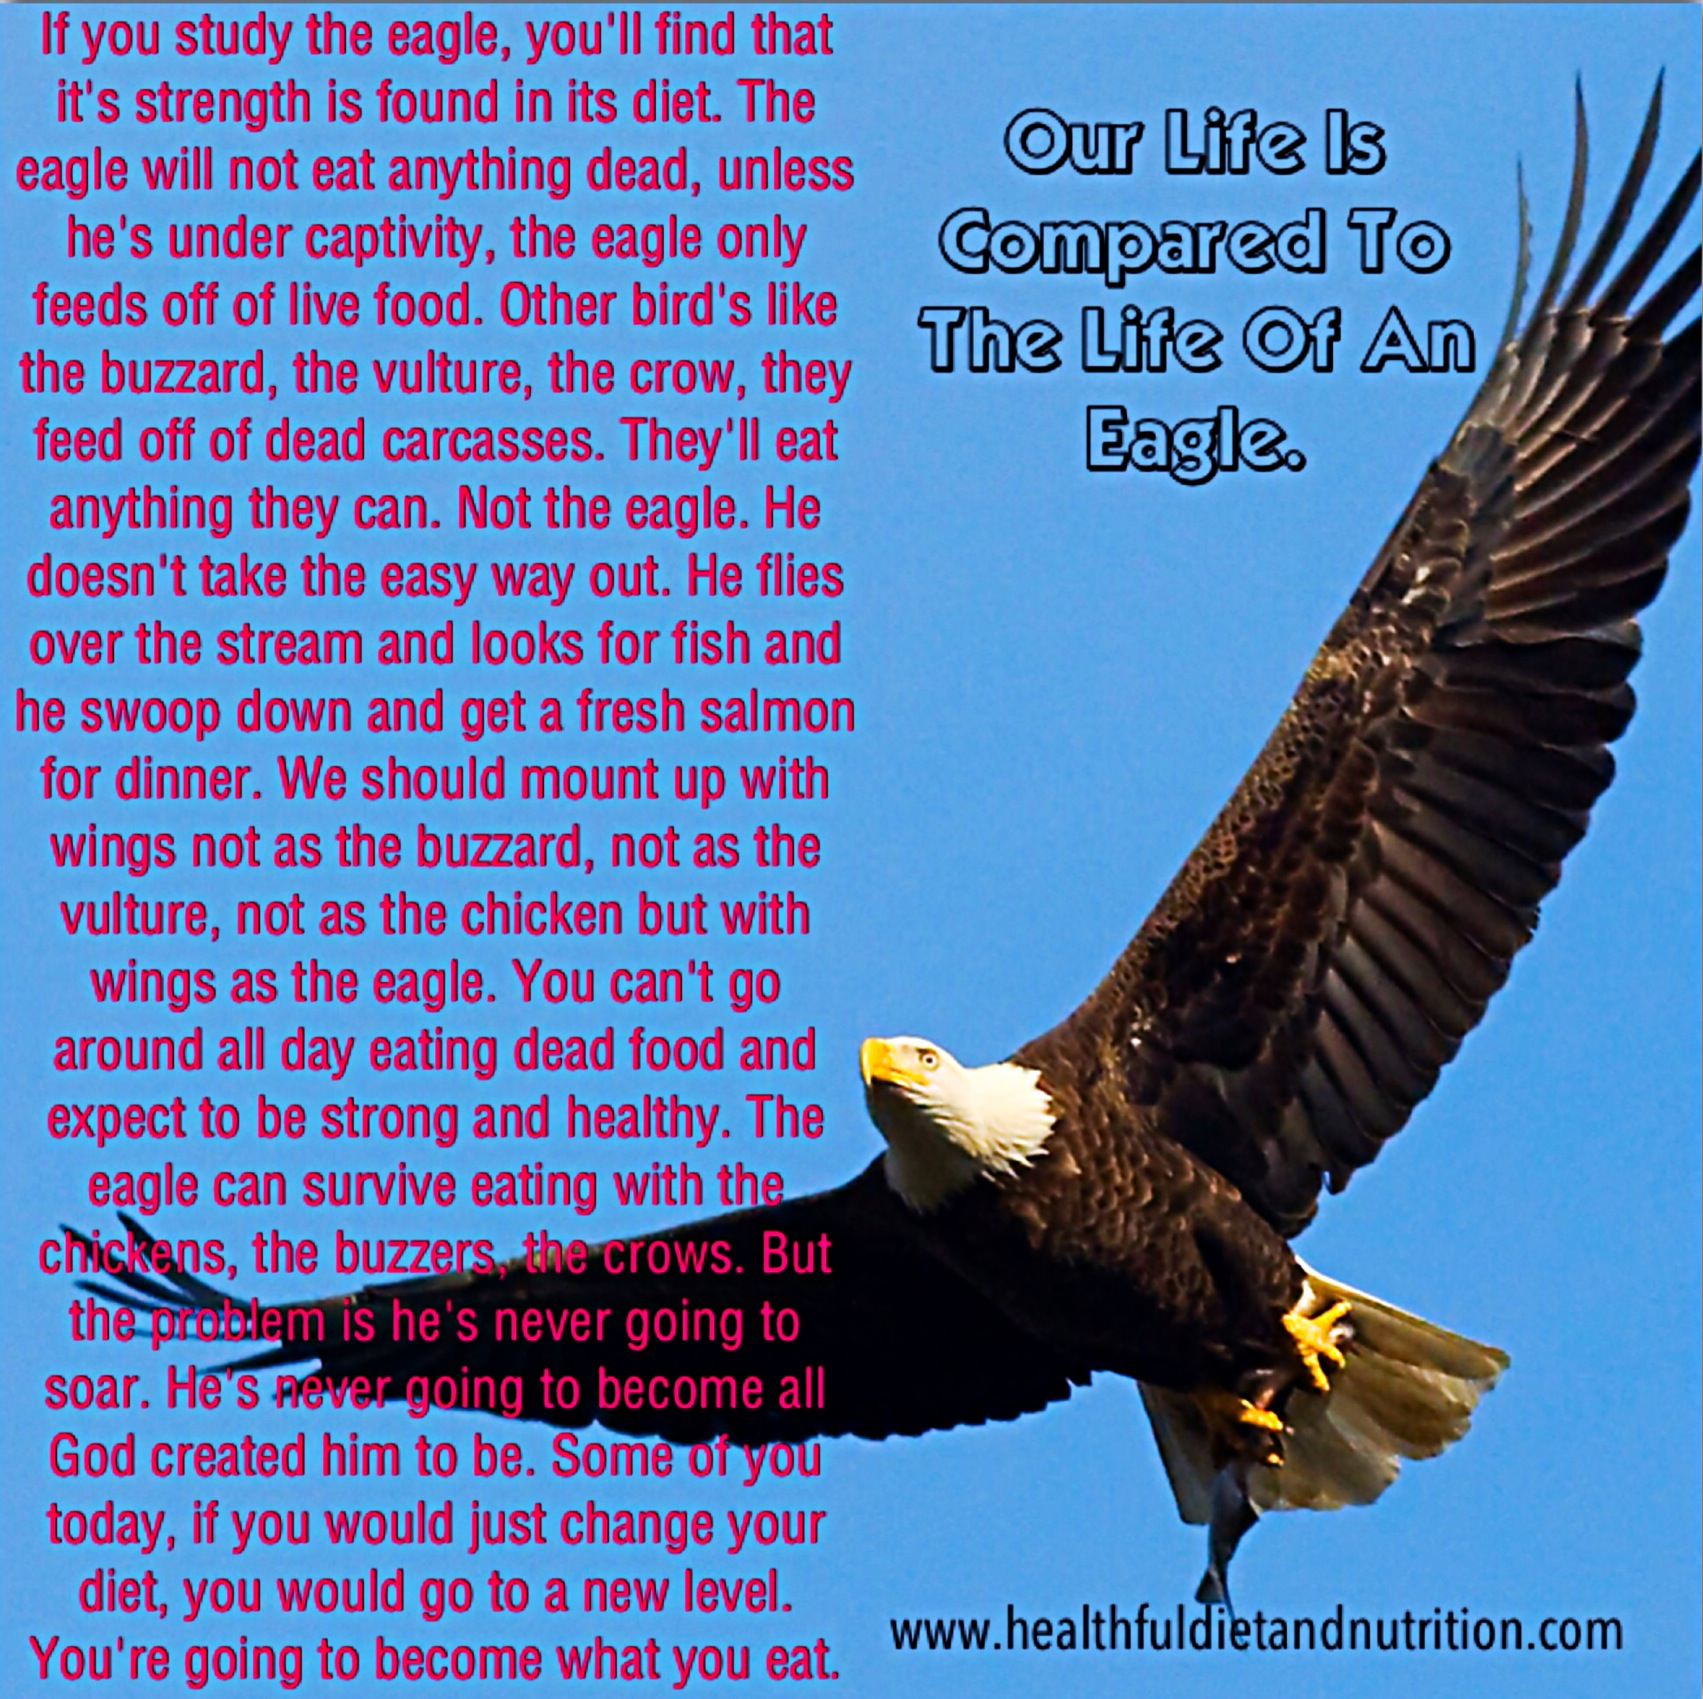 Our Life Is Compared To The Life Of An Eagle